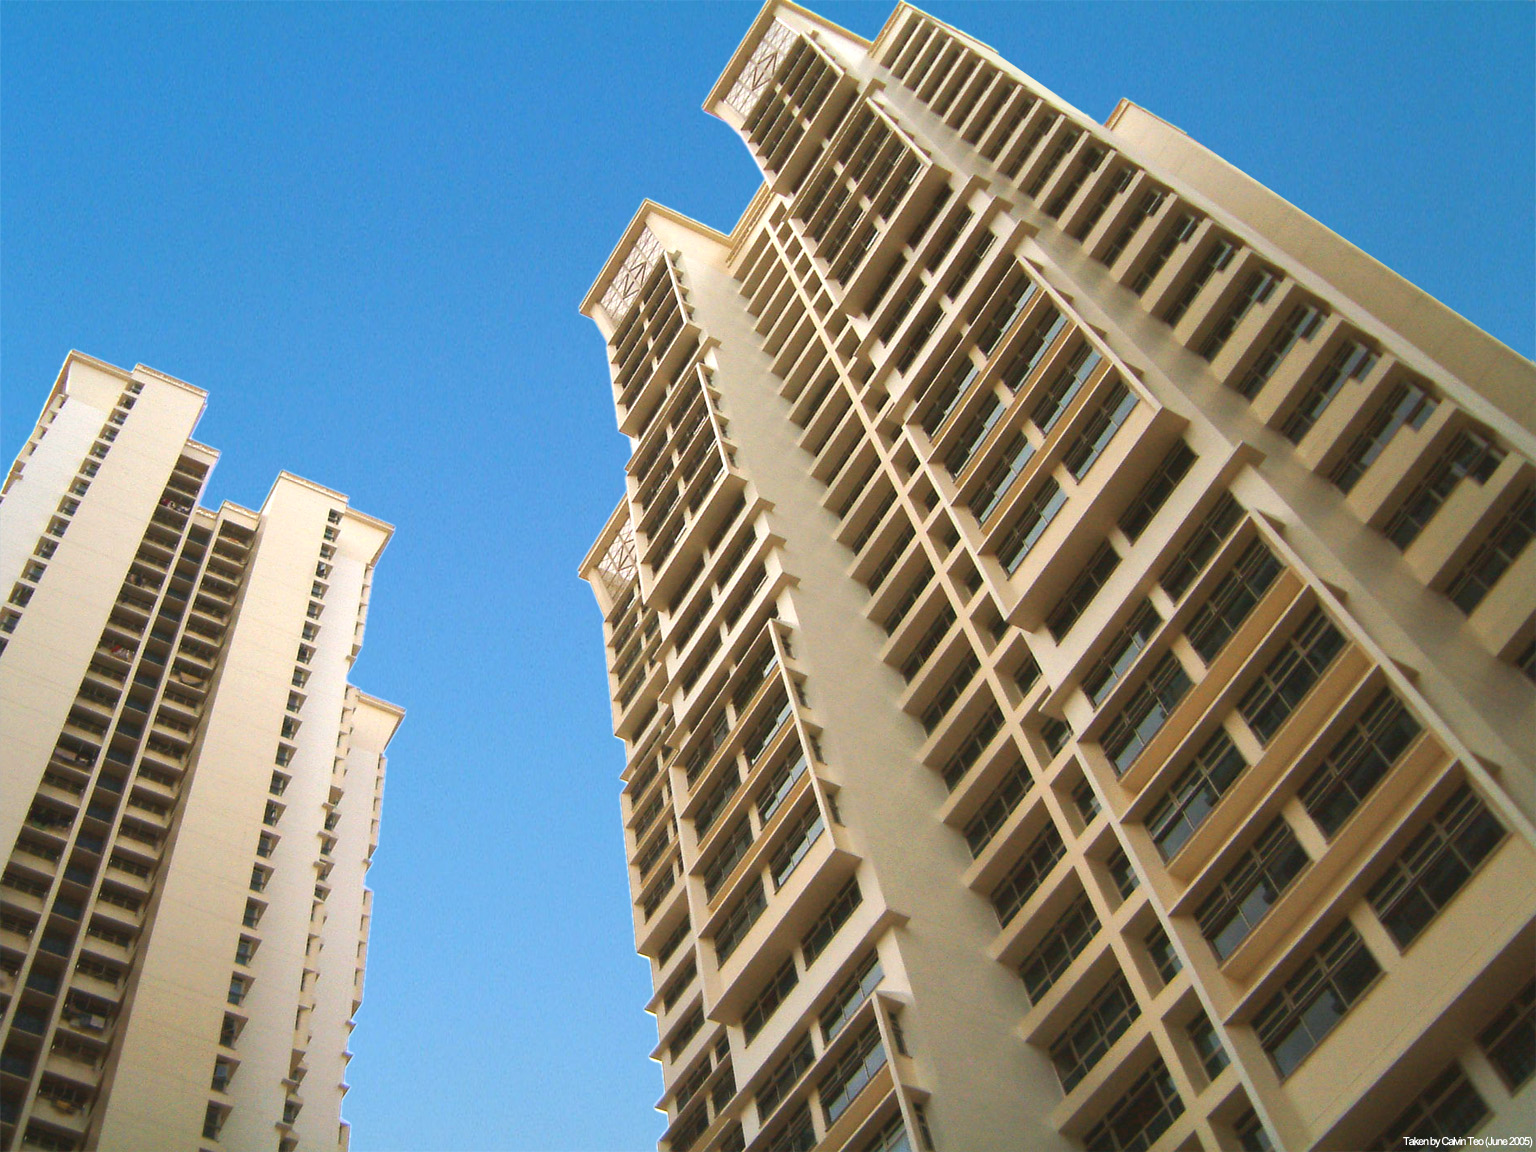 Hdb Private Property Ownership